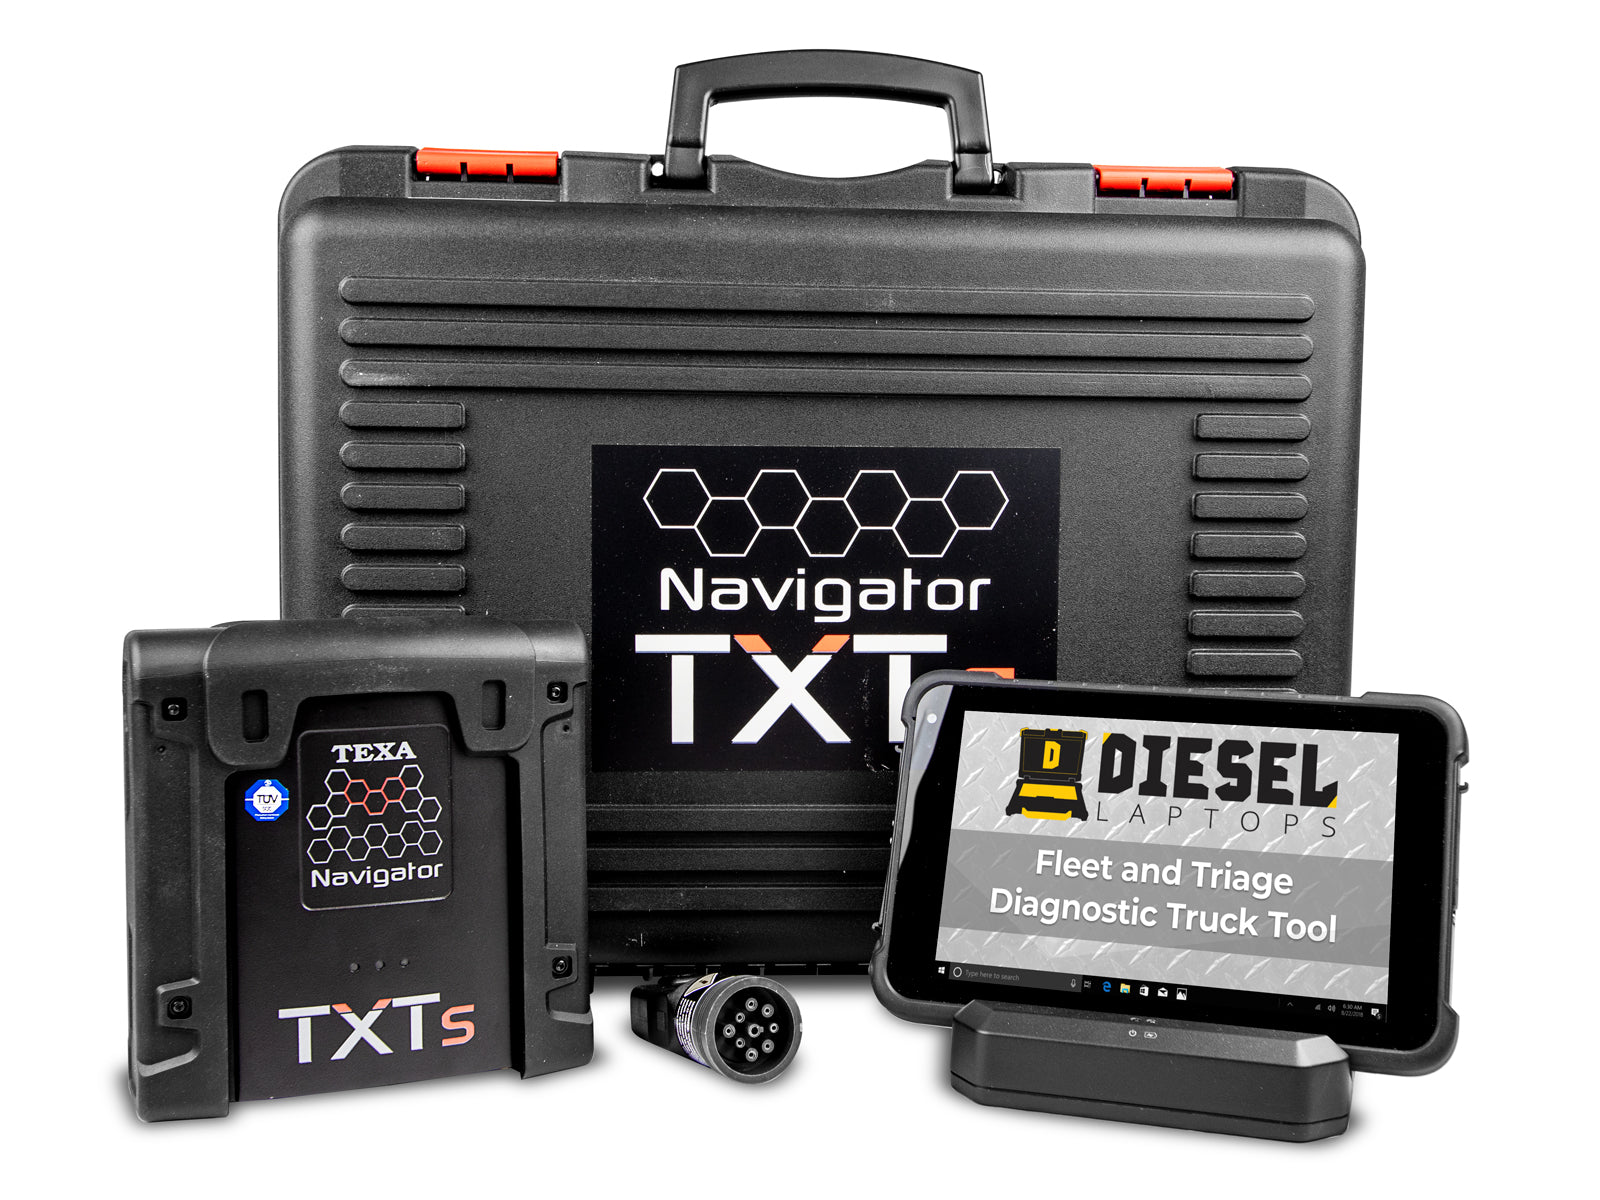 Diesel Laptops Fleet and Triage Diagnostic Truck Tool